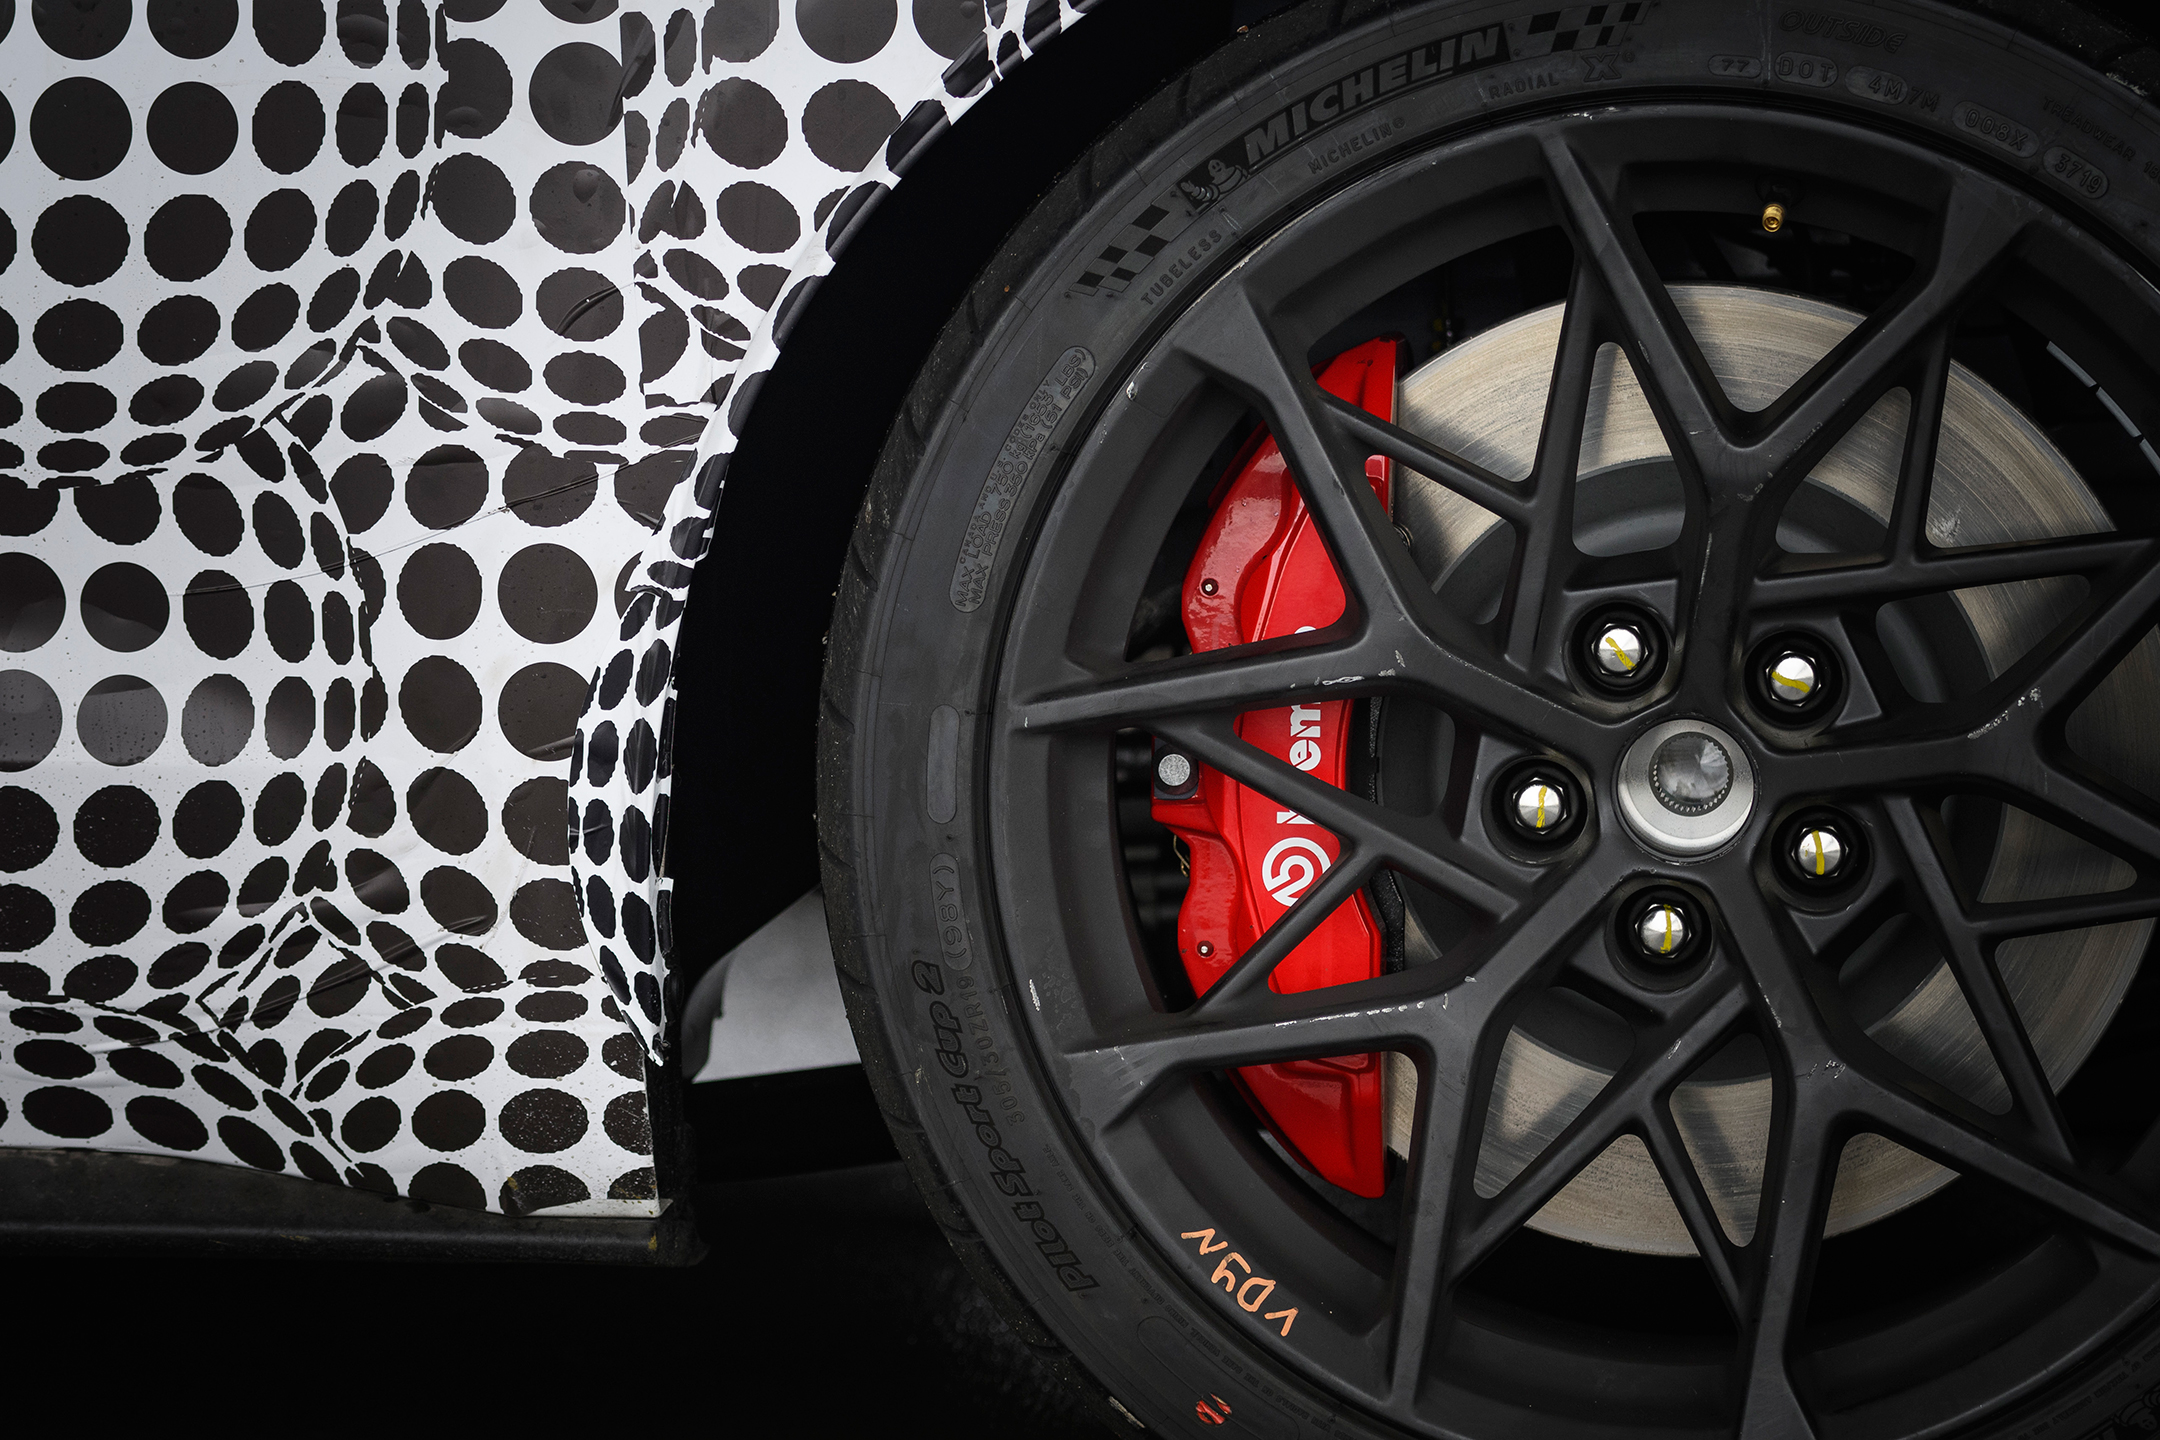 Ford Mustang Mach 1 - 2020 - wheel / jante - Brembo brake discs - Michelin tyres